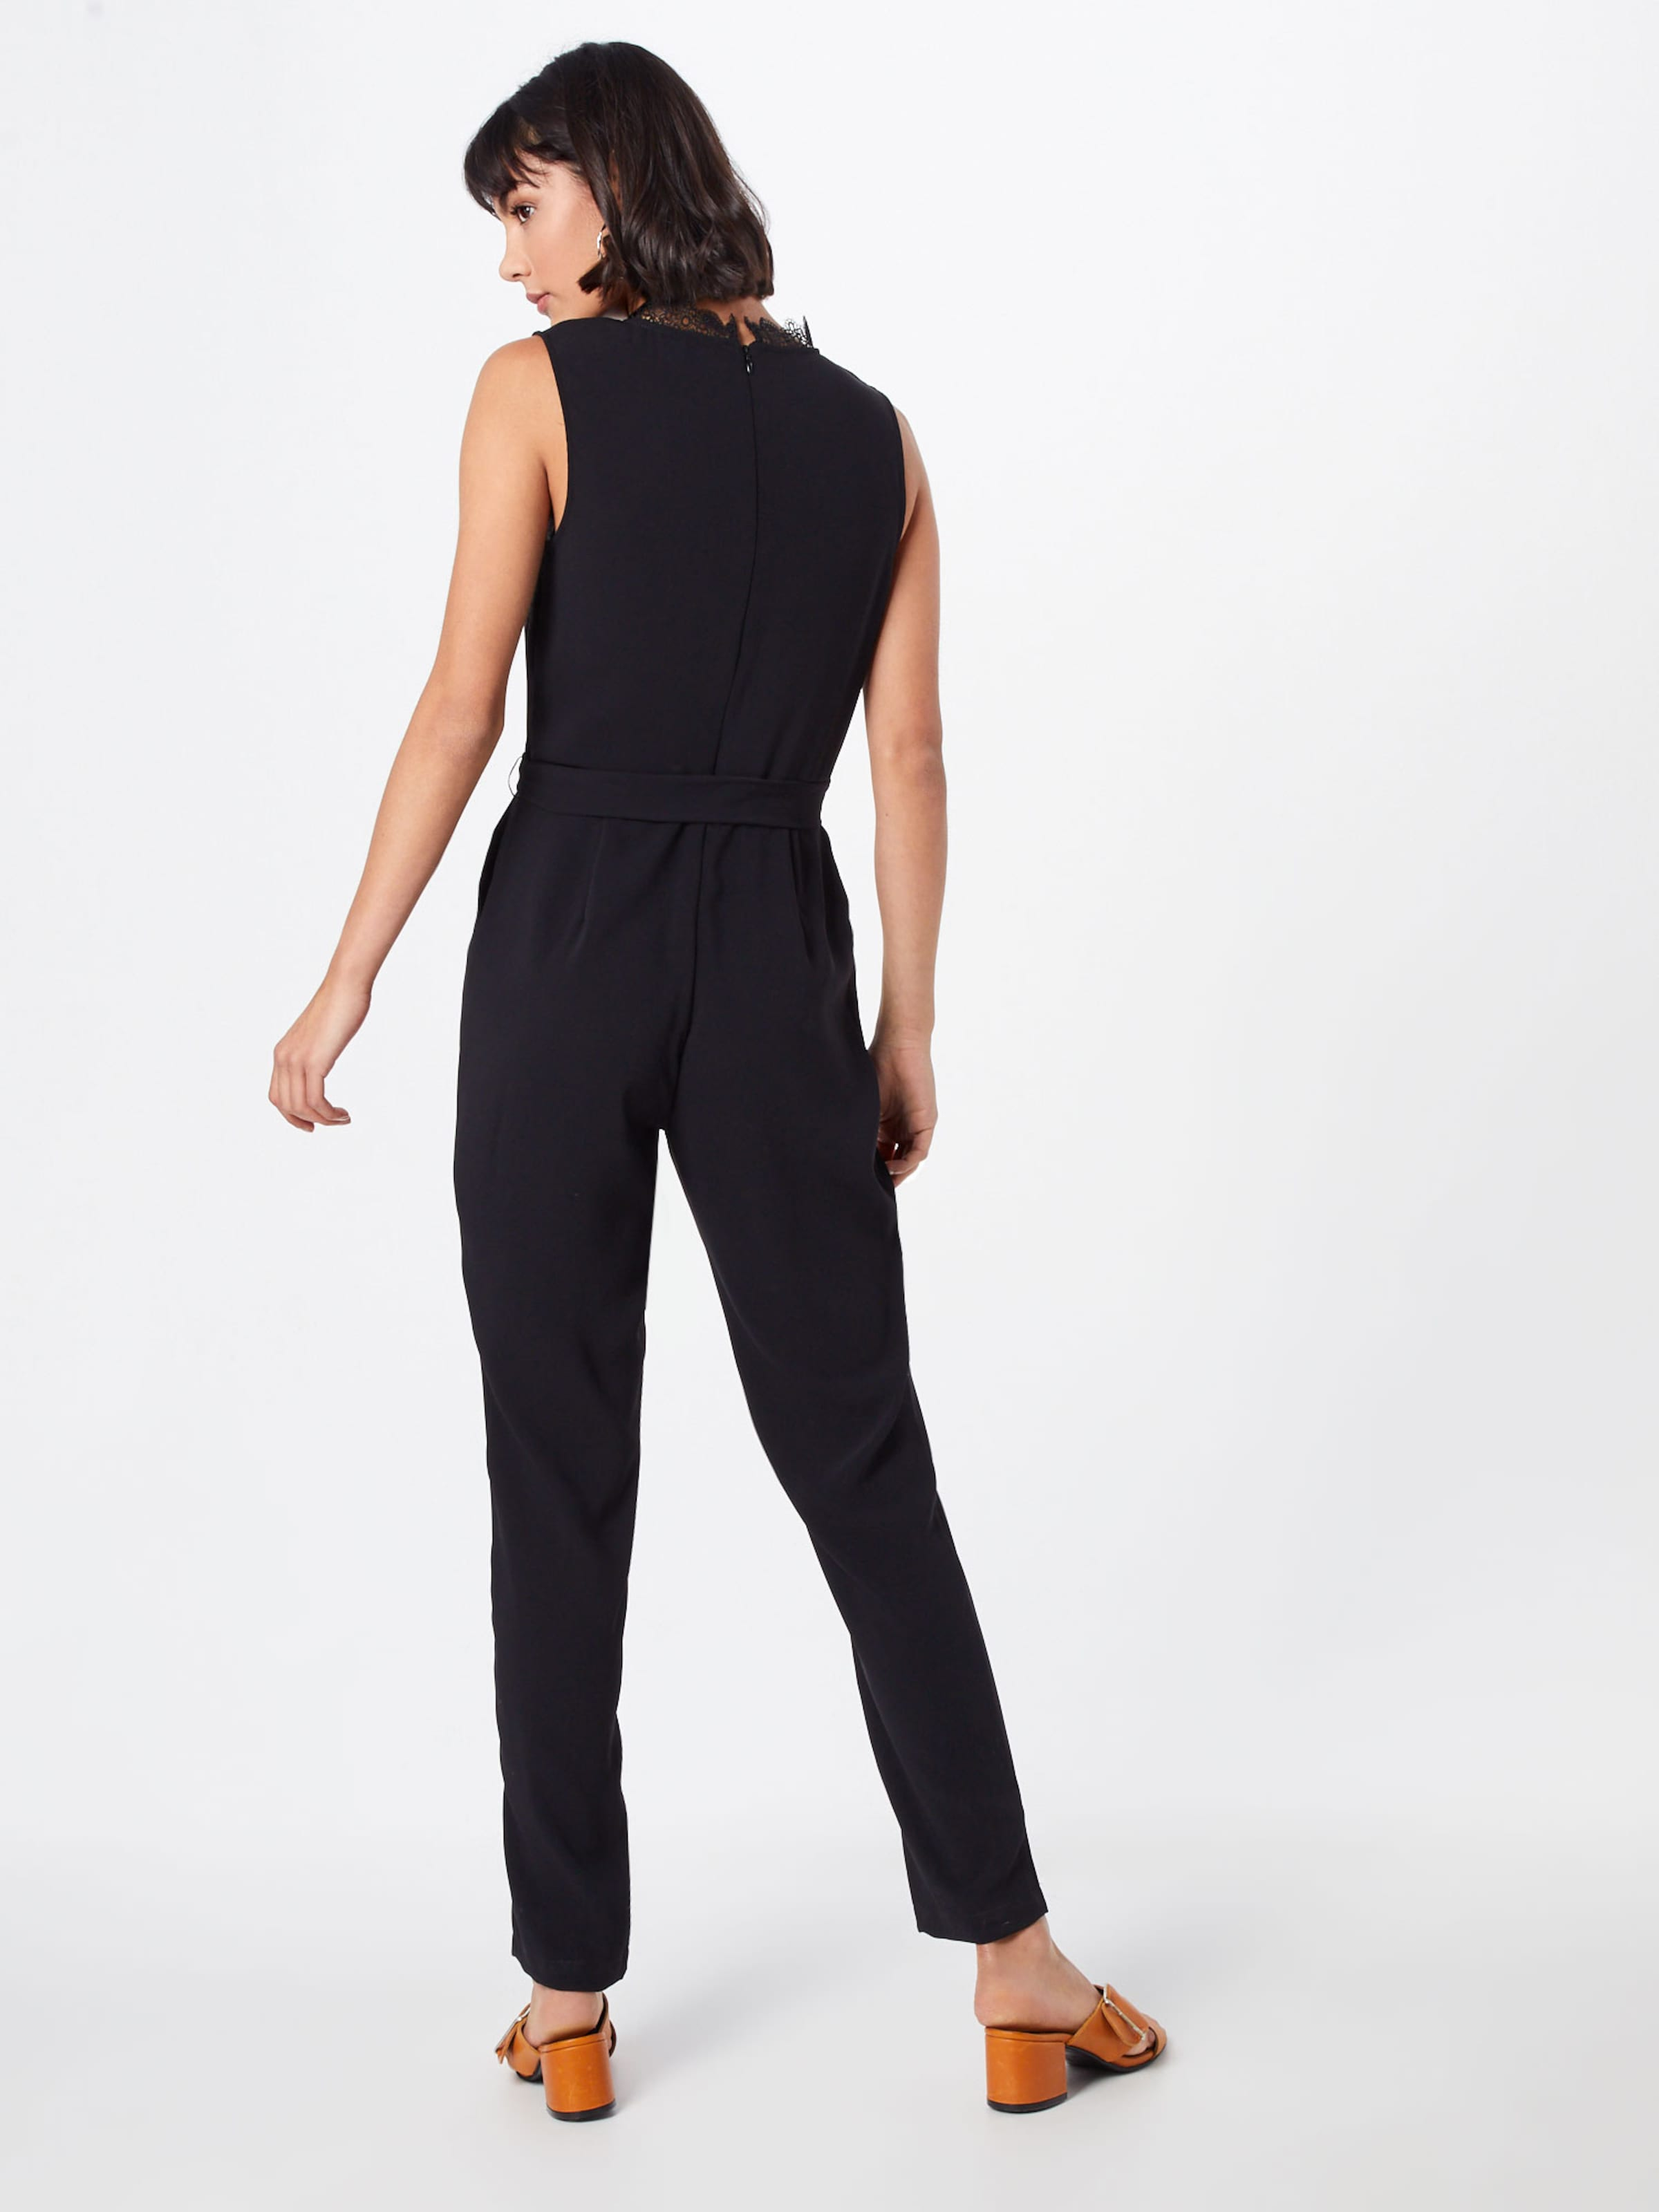 Anna Trim Jumpsuit' In Schwarz Field Woven Overalls 'lace Yb7fv6gy